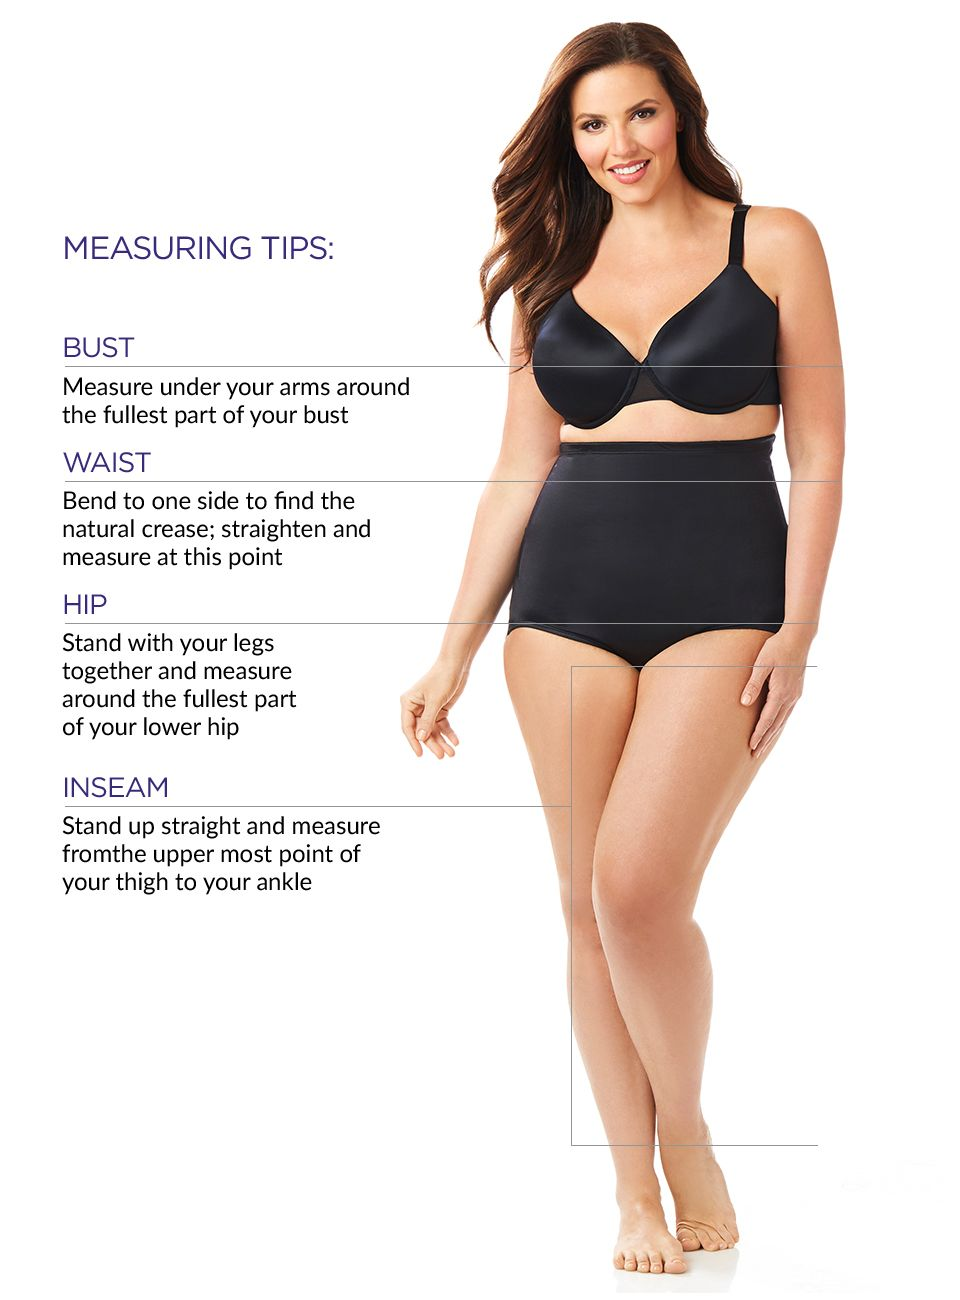 bd57949255 ... shape; Swimwear that offers extra support with premium stretch material  and tummy-control panels